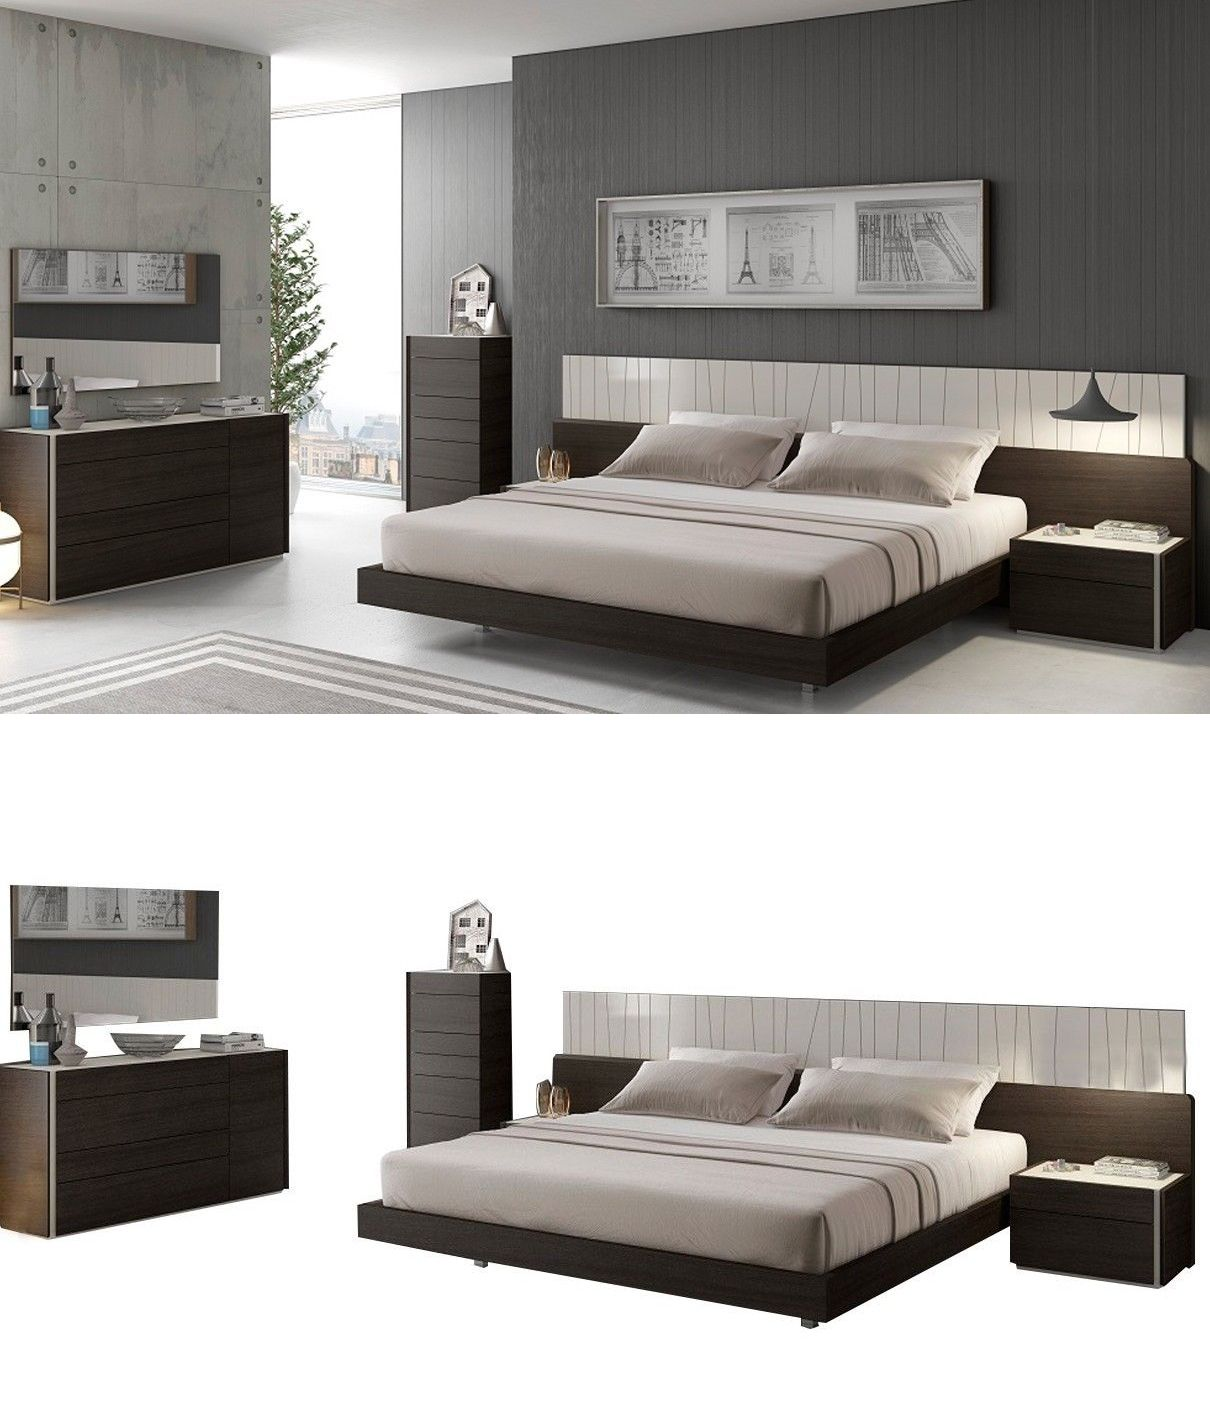 Bedroom Sets 20480: Jandm Porto Contemporary King Bedroom ...